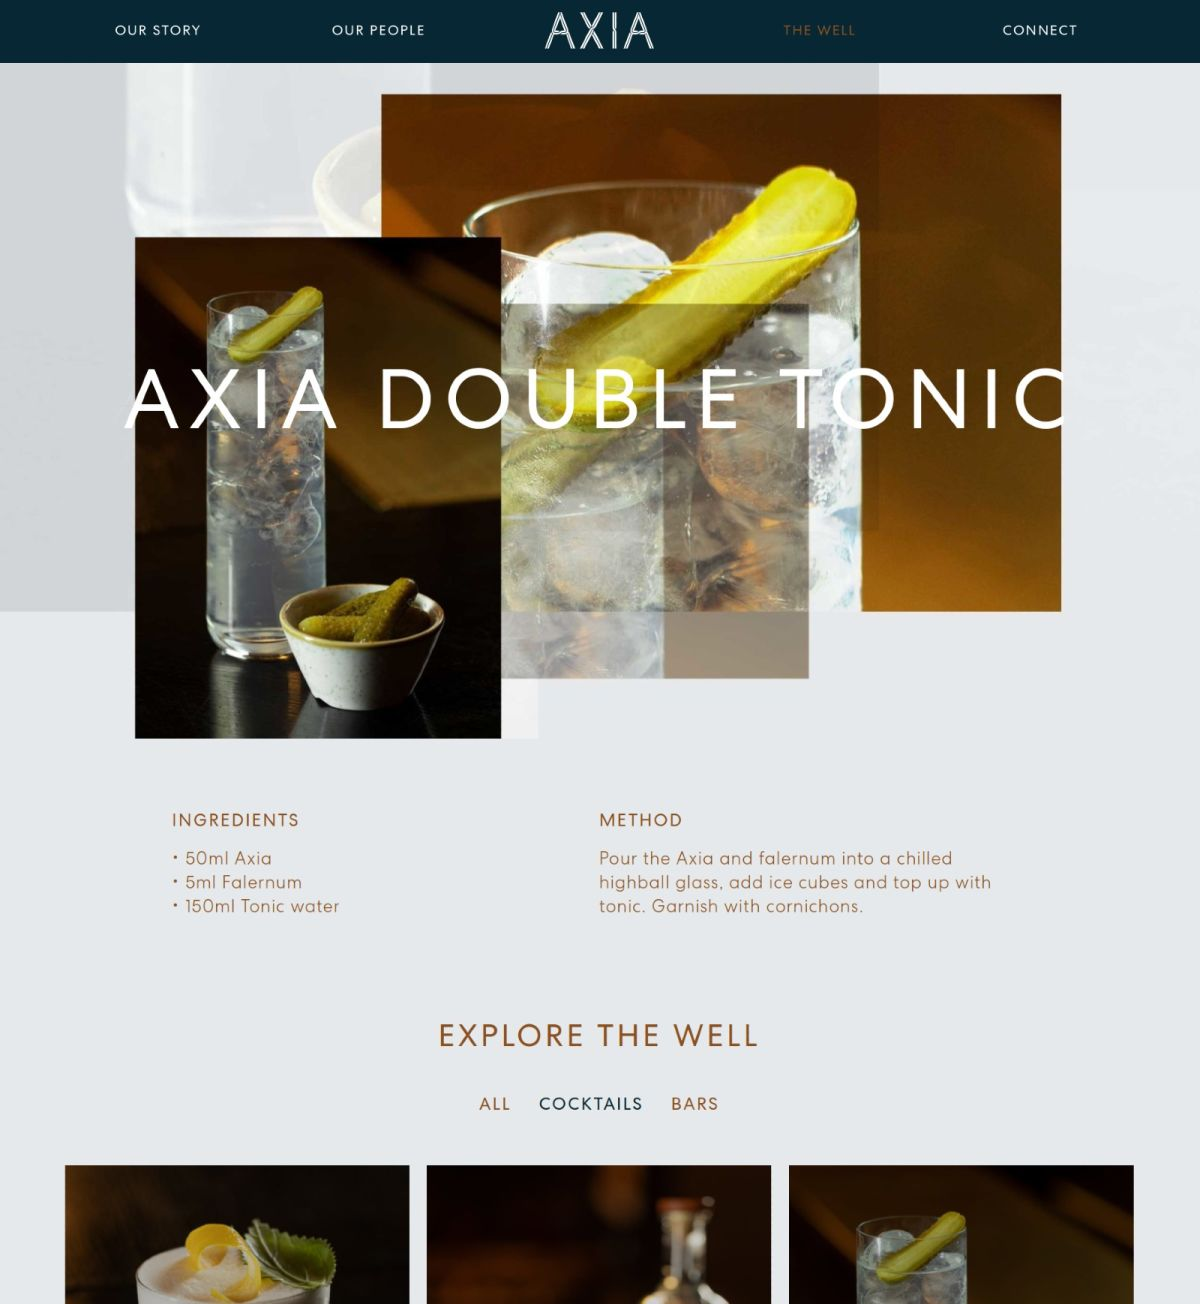 recipe for Axia spirit double tonic drink.